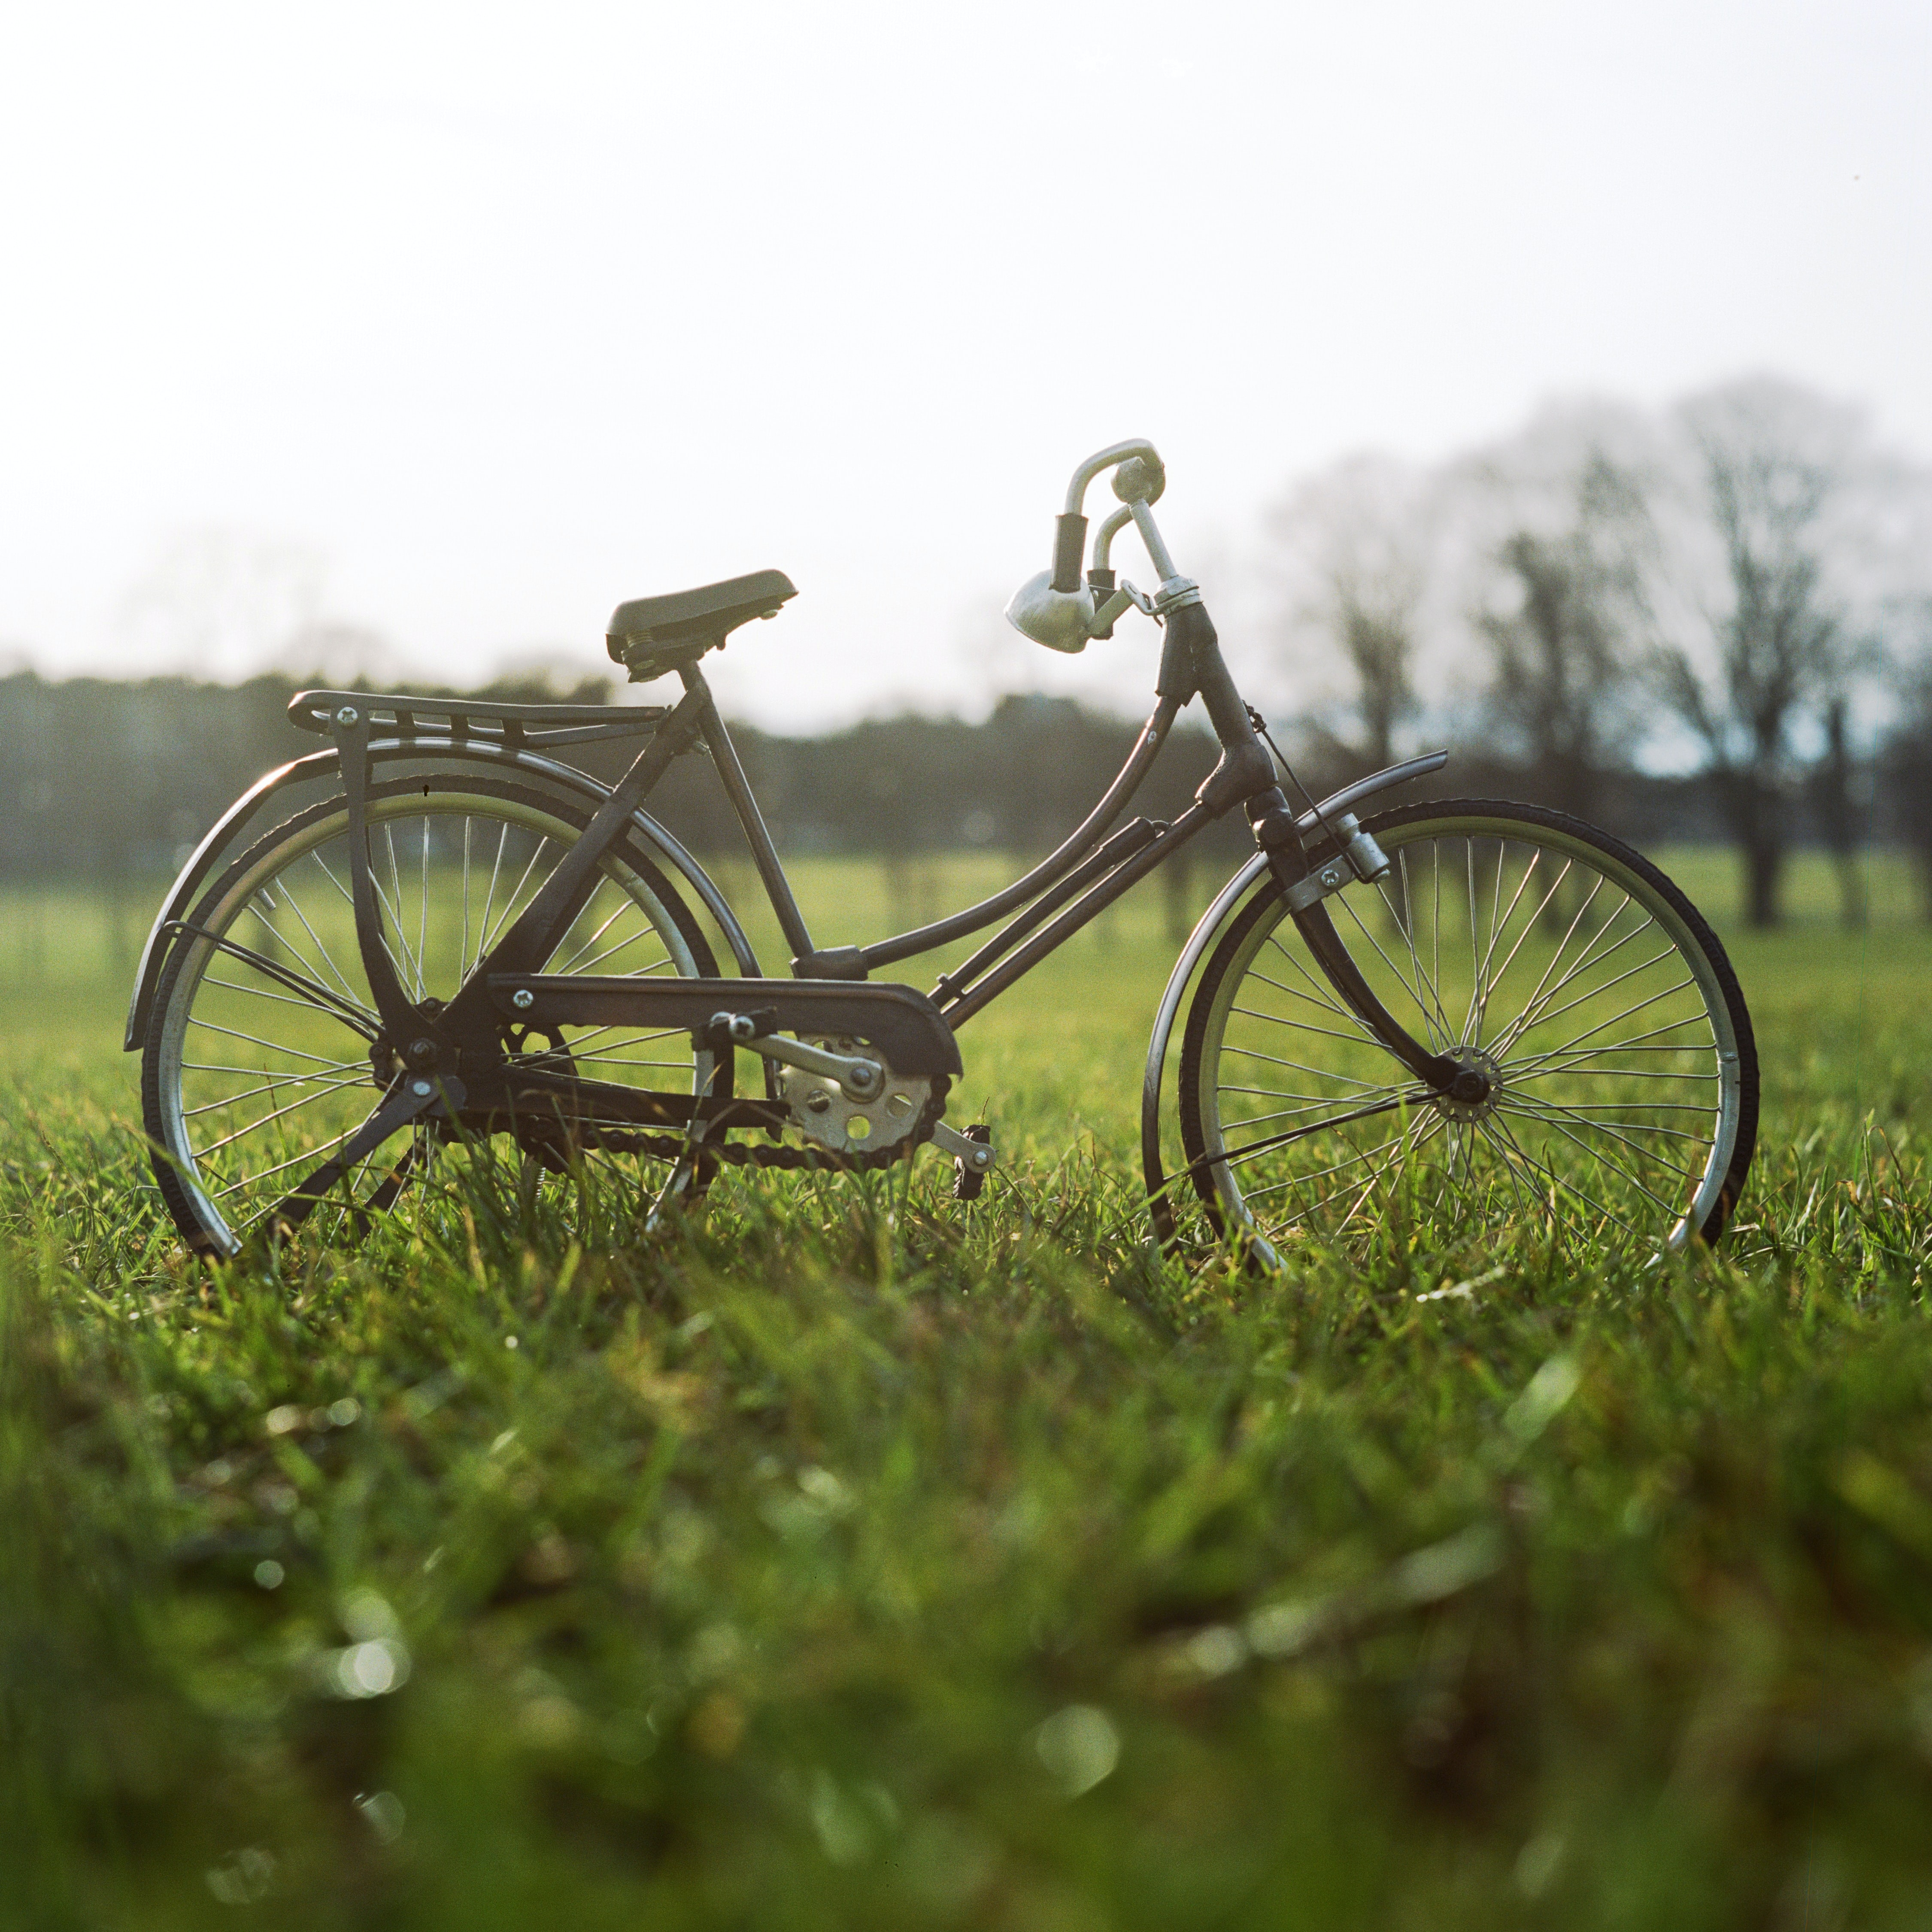 A black bicycle on grass in The Meadows